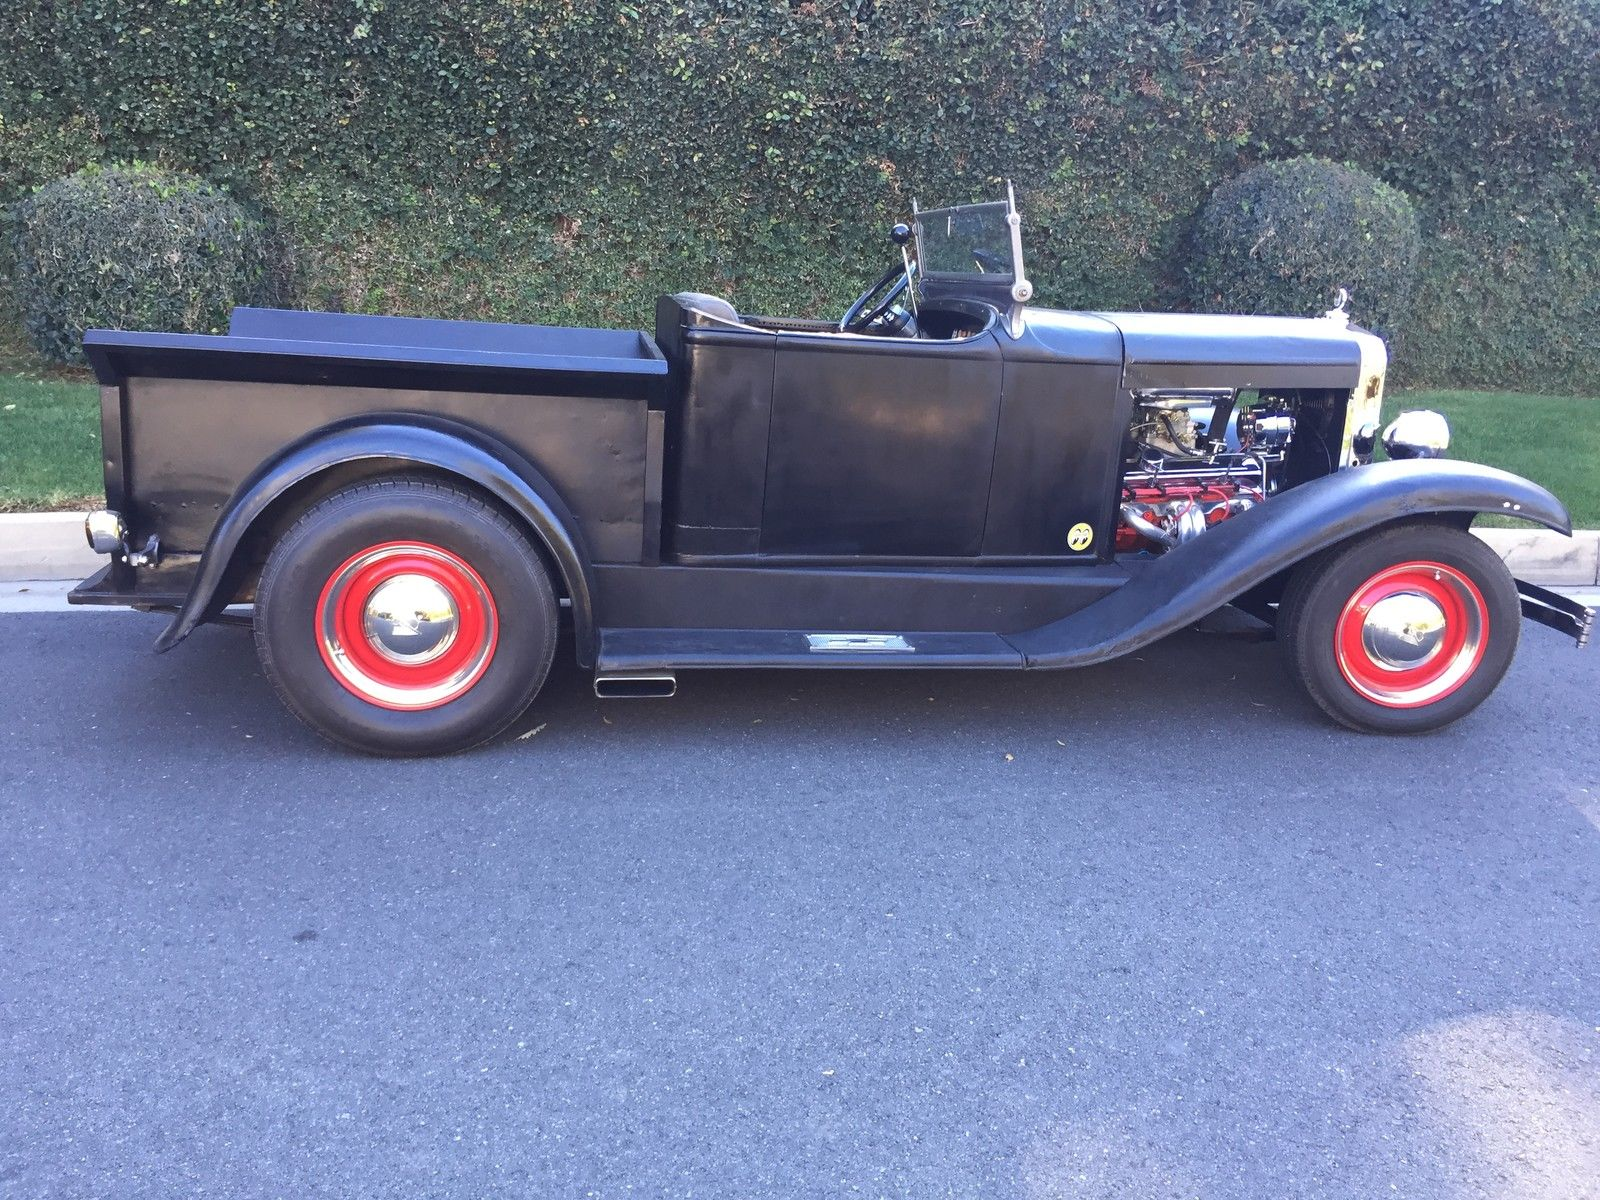 Awesome Chevy Roadster Pick Up Hot Rat Rod Patina Shop Truck V8 1949 Technical Specifications Of Chevrolet Other Pickups 1930